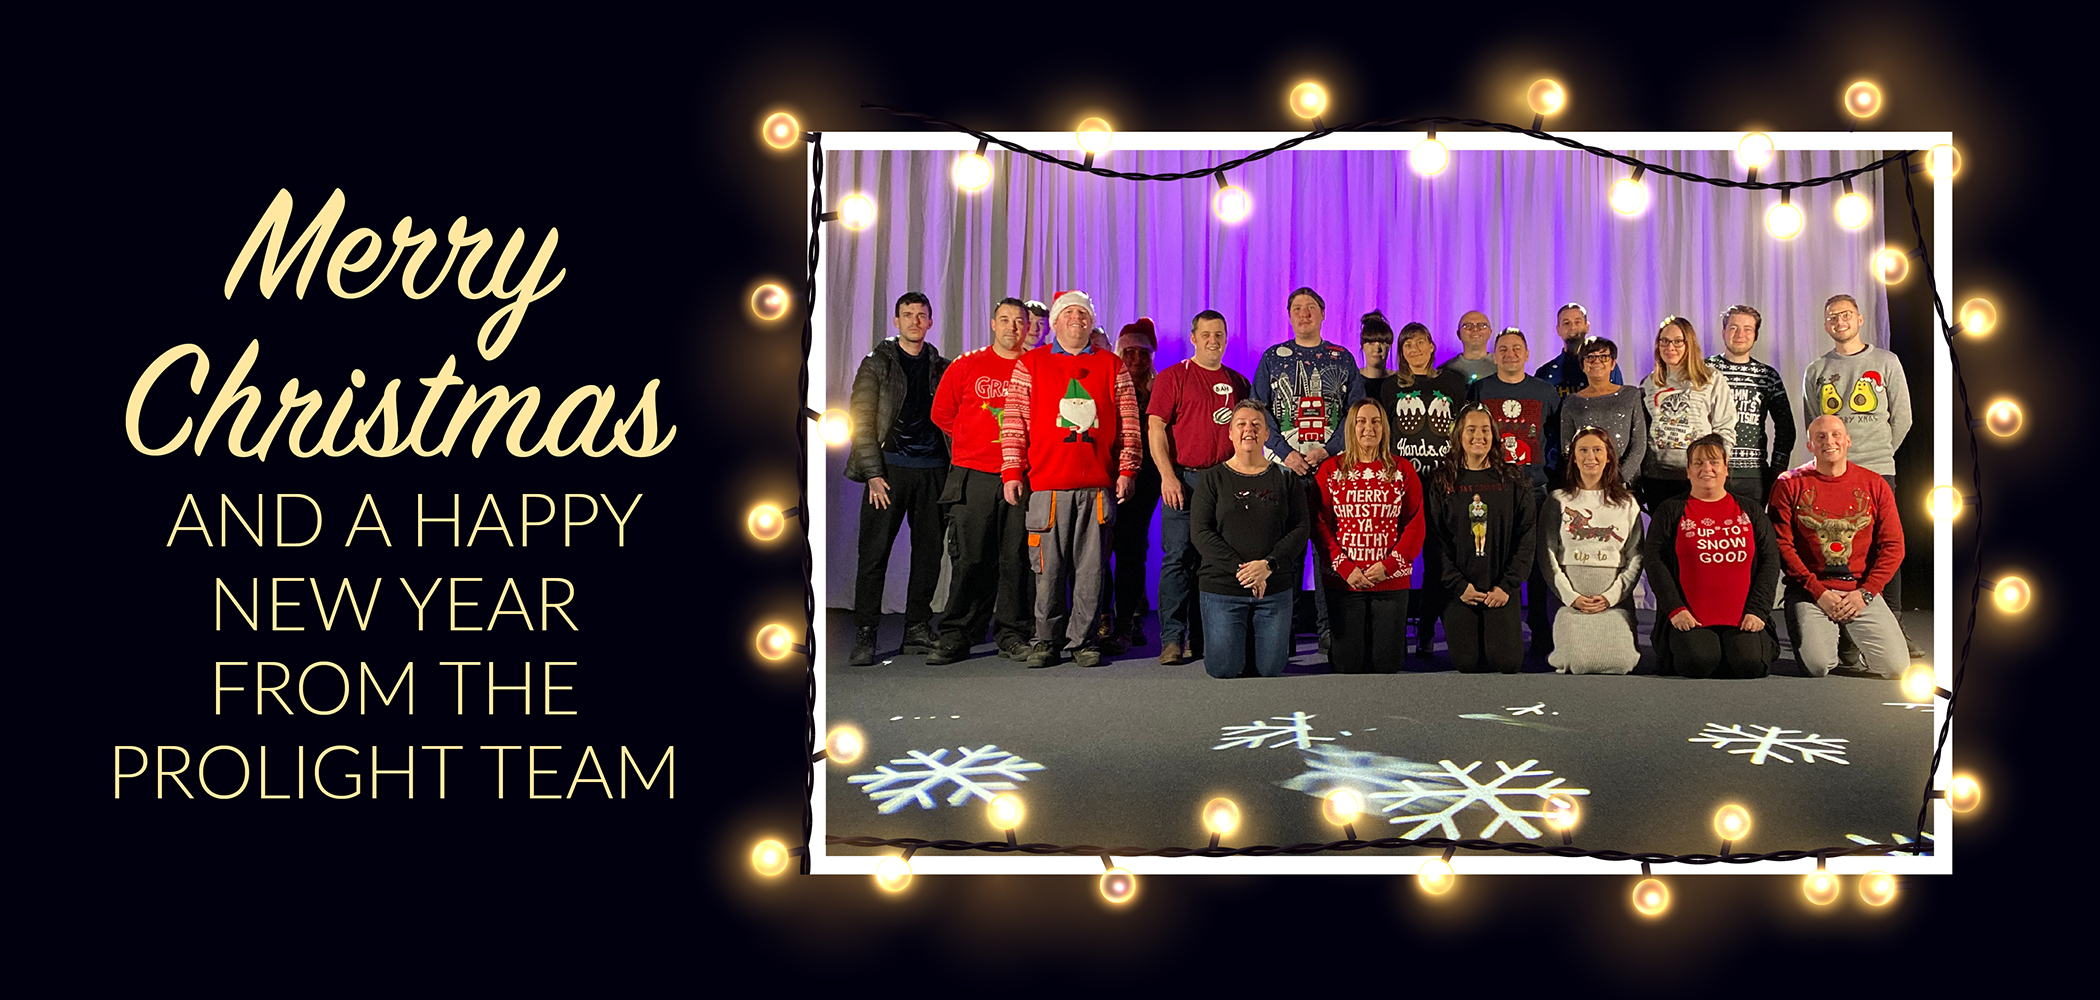 Merry Christmas from all at Prolight